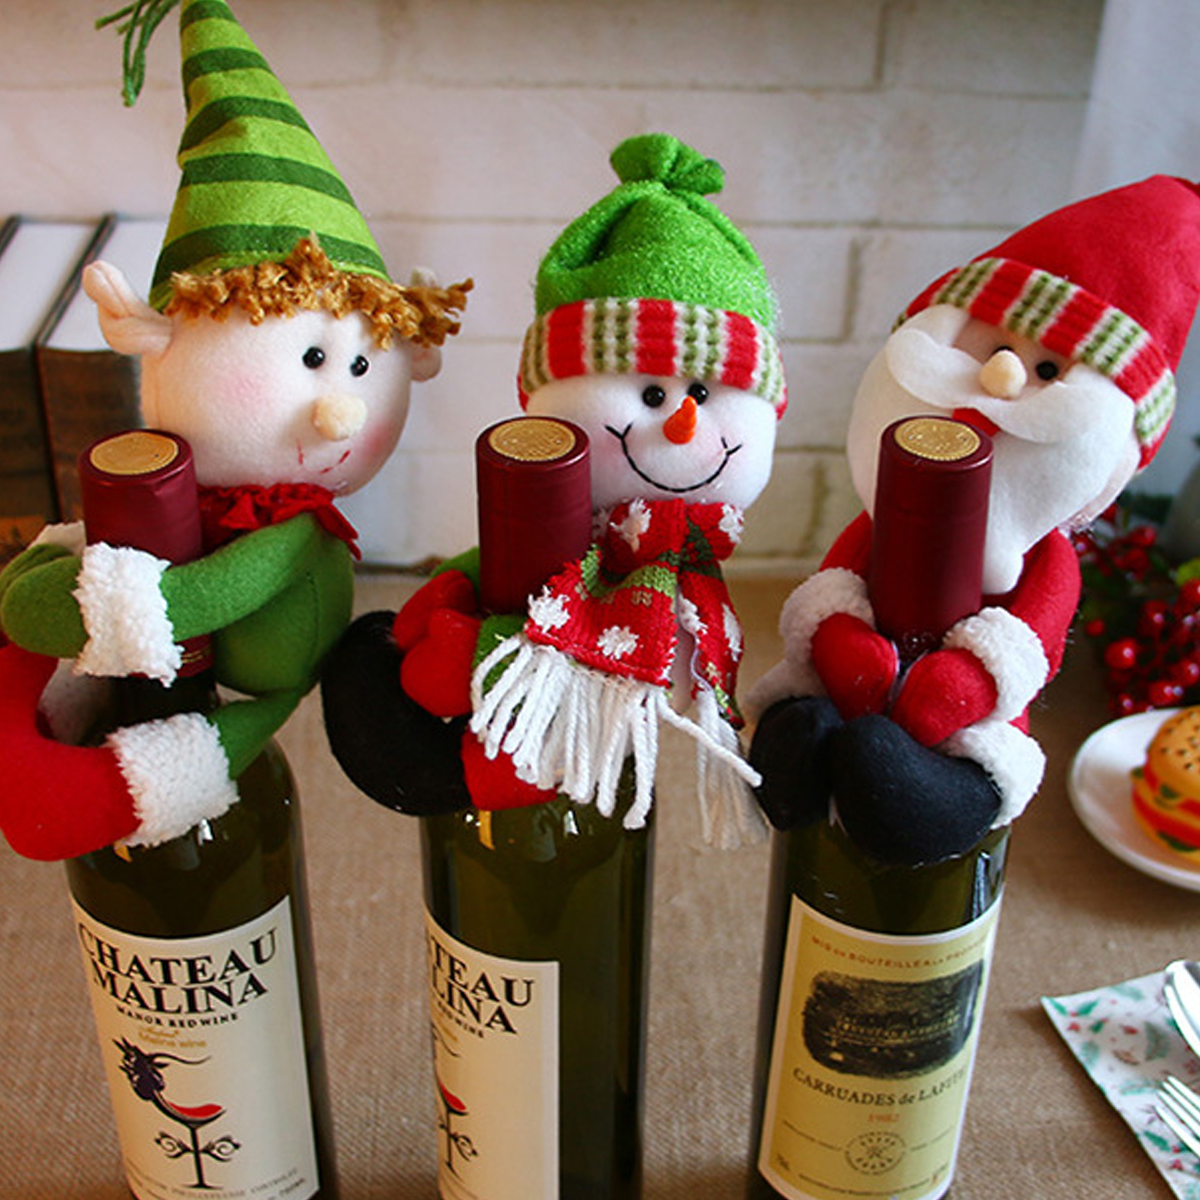 Discreet Nhbr-1pcs Table Decorations Wine Bottle Cover Ornament Wedding Table Decorations Novelty Decoration Snowman Santa Clause Lovel Dust Covers